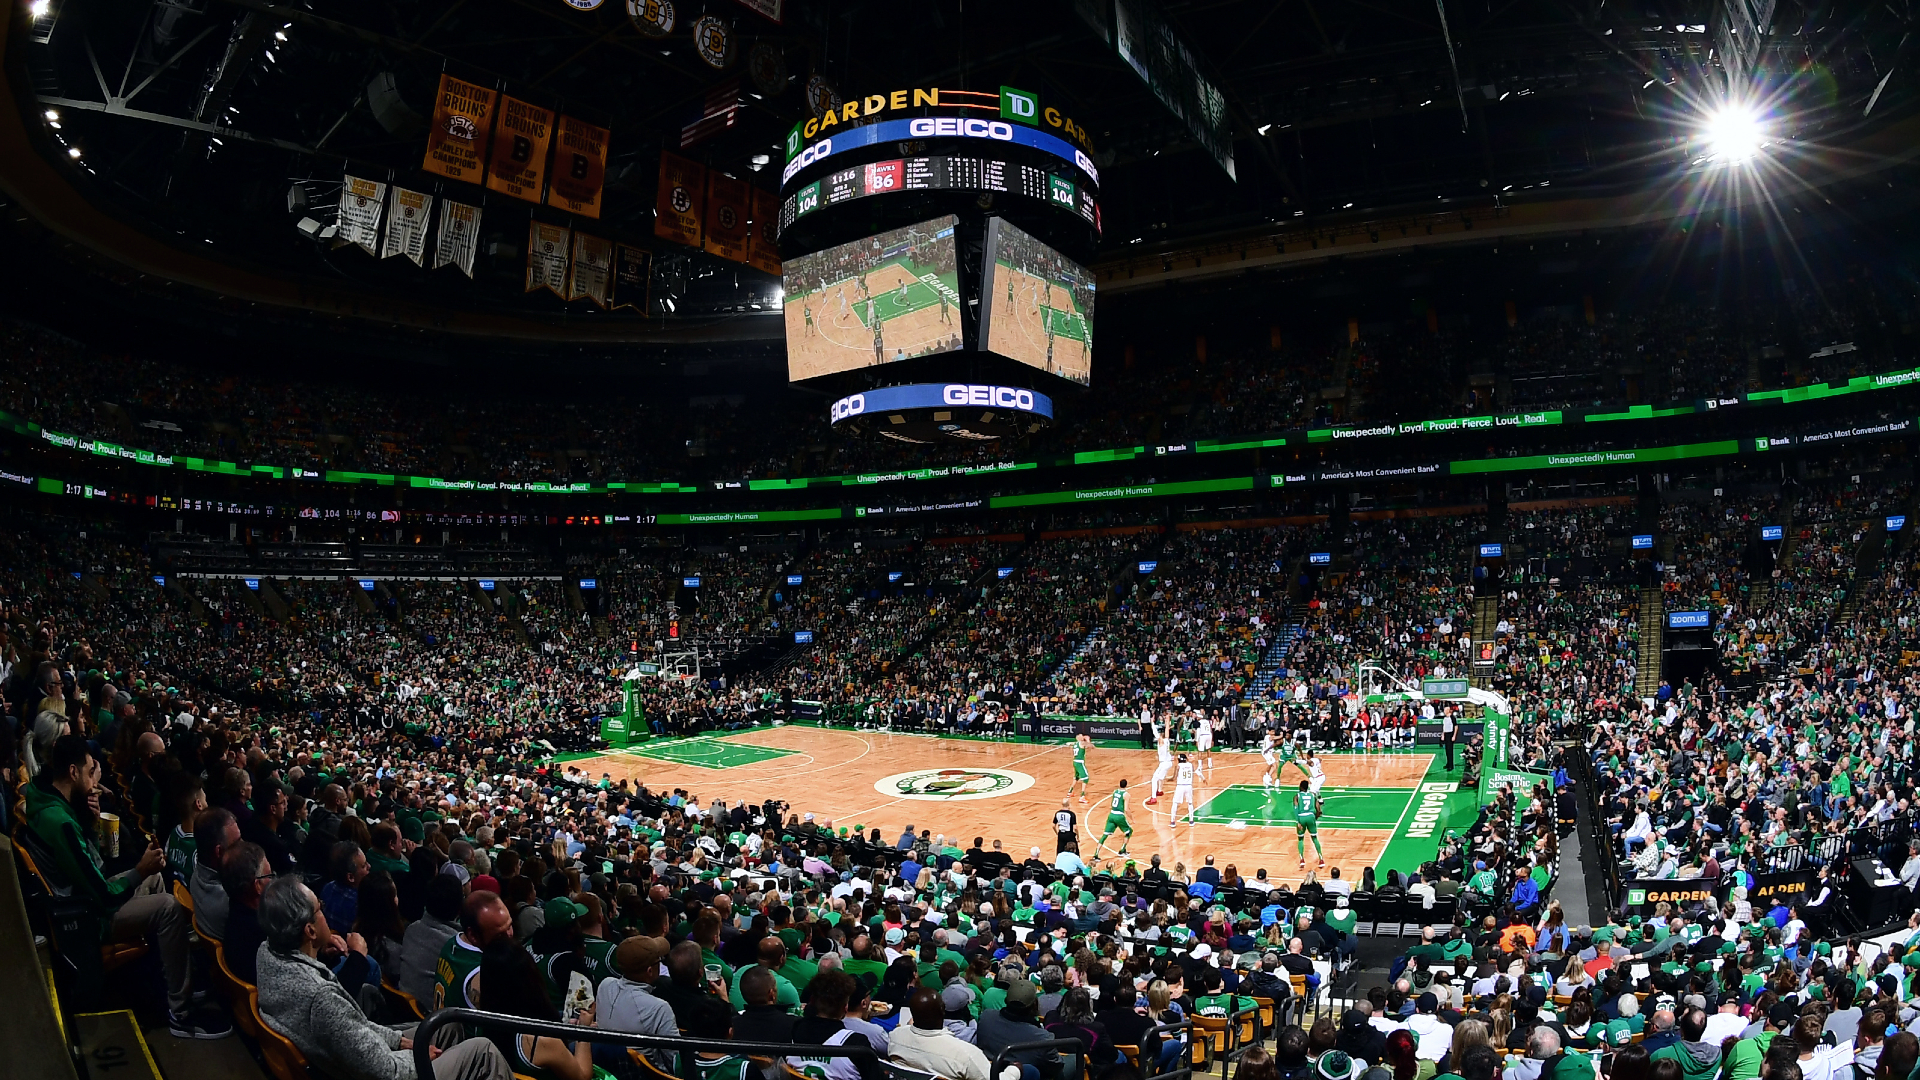 TD Garden to require vaccinations or negative COVID-19 tests